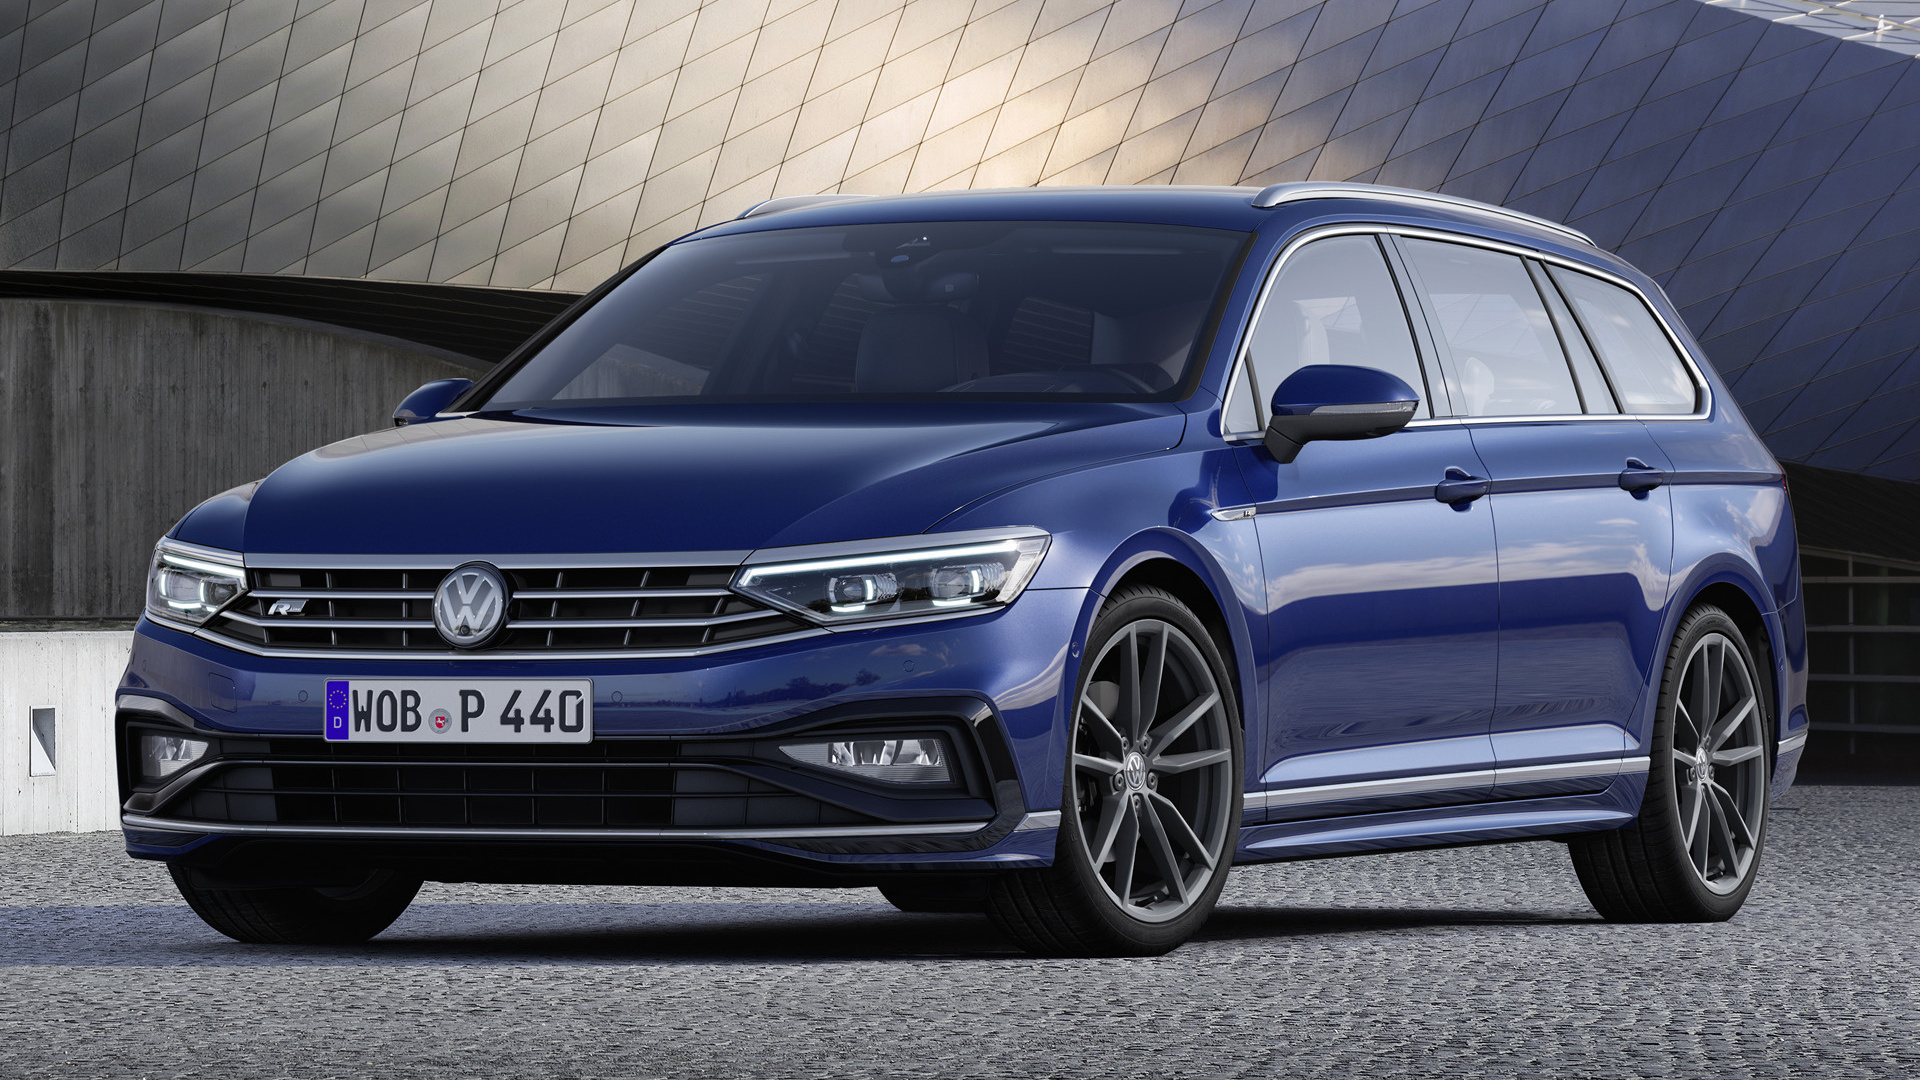 2019 volkswagen passat variant r line wallpapers and hd. Black Bedroom Furniture Sets. Home Design Ideas